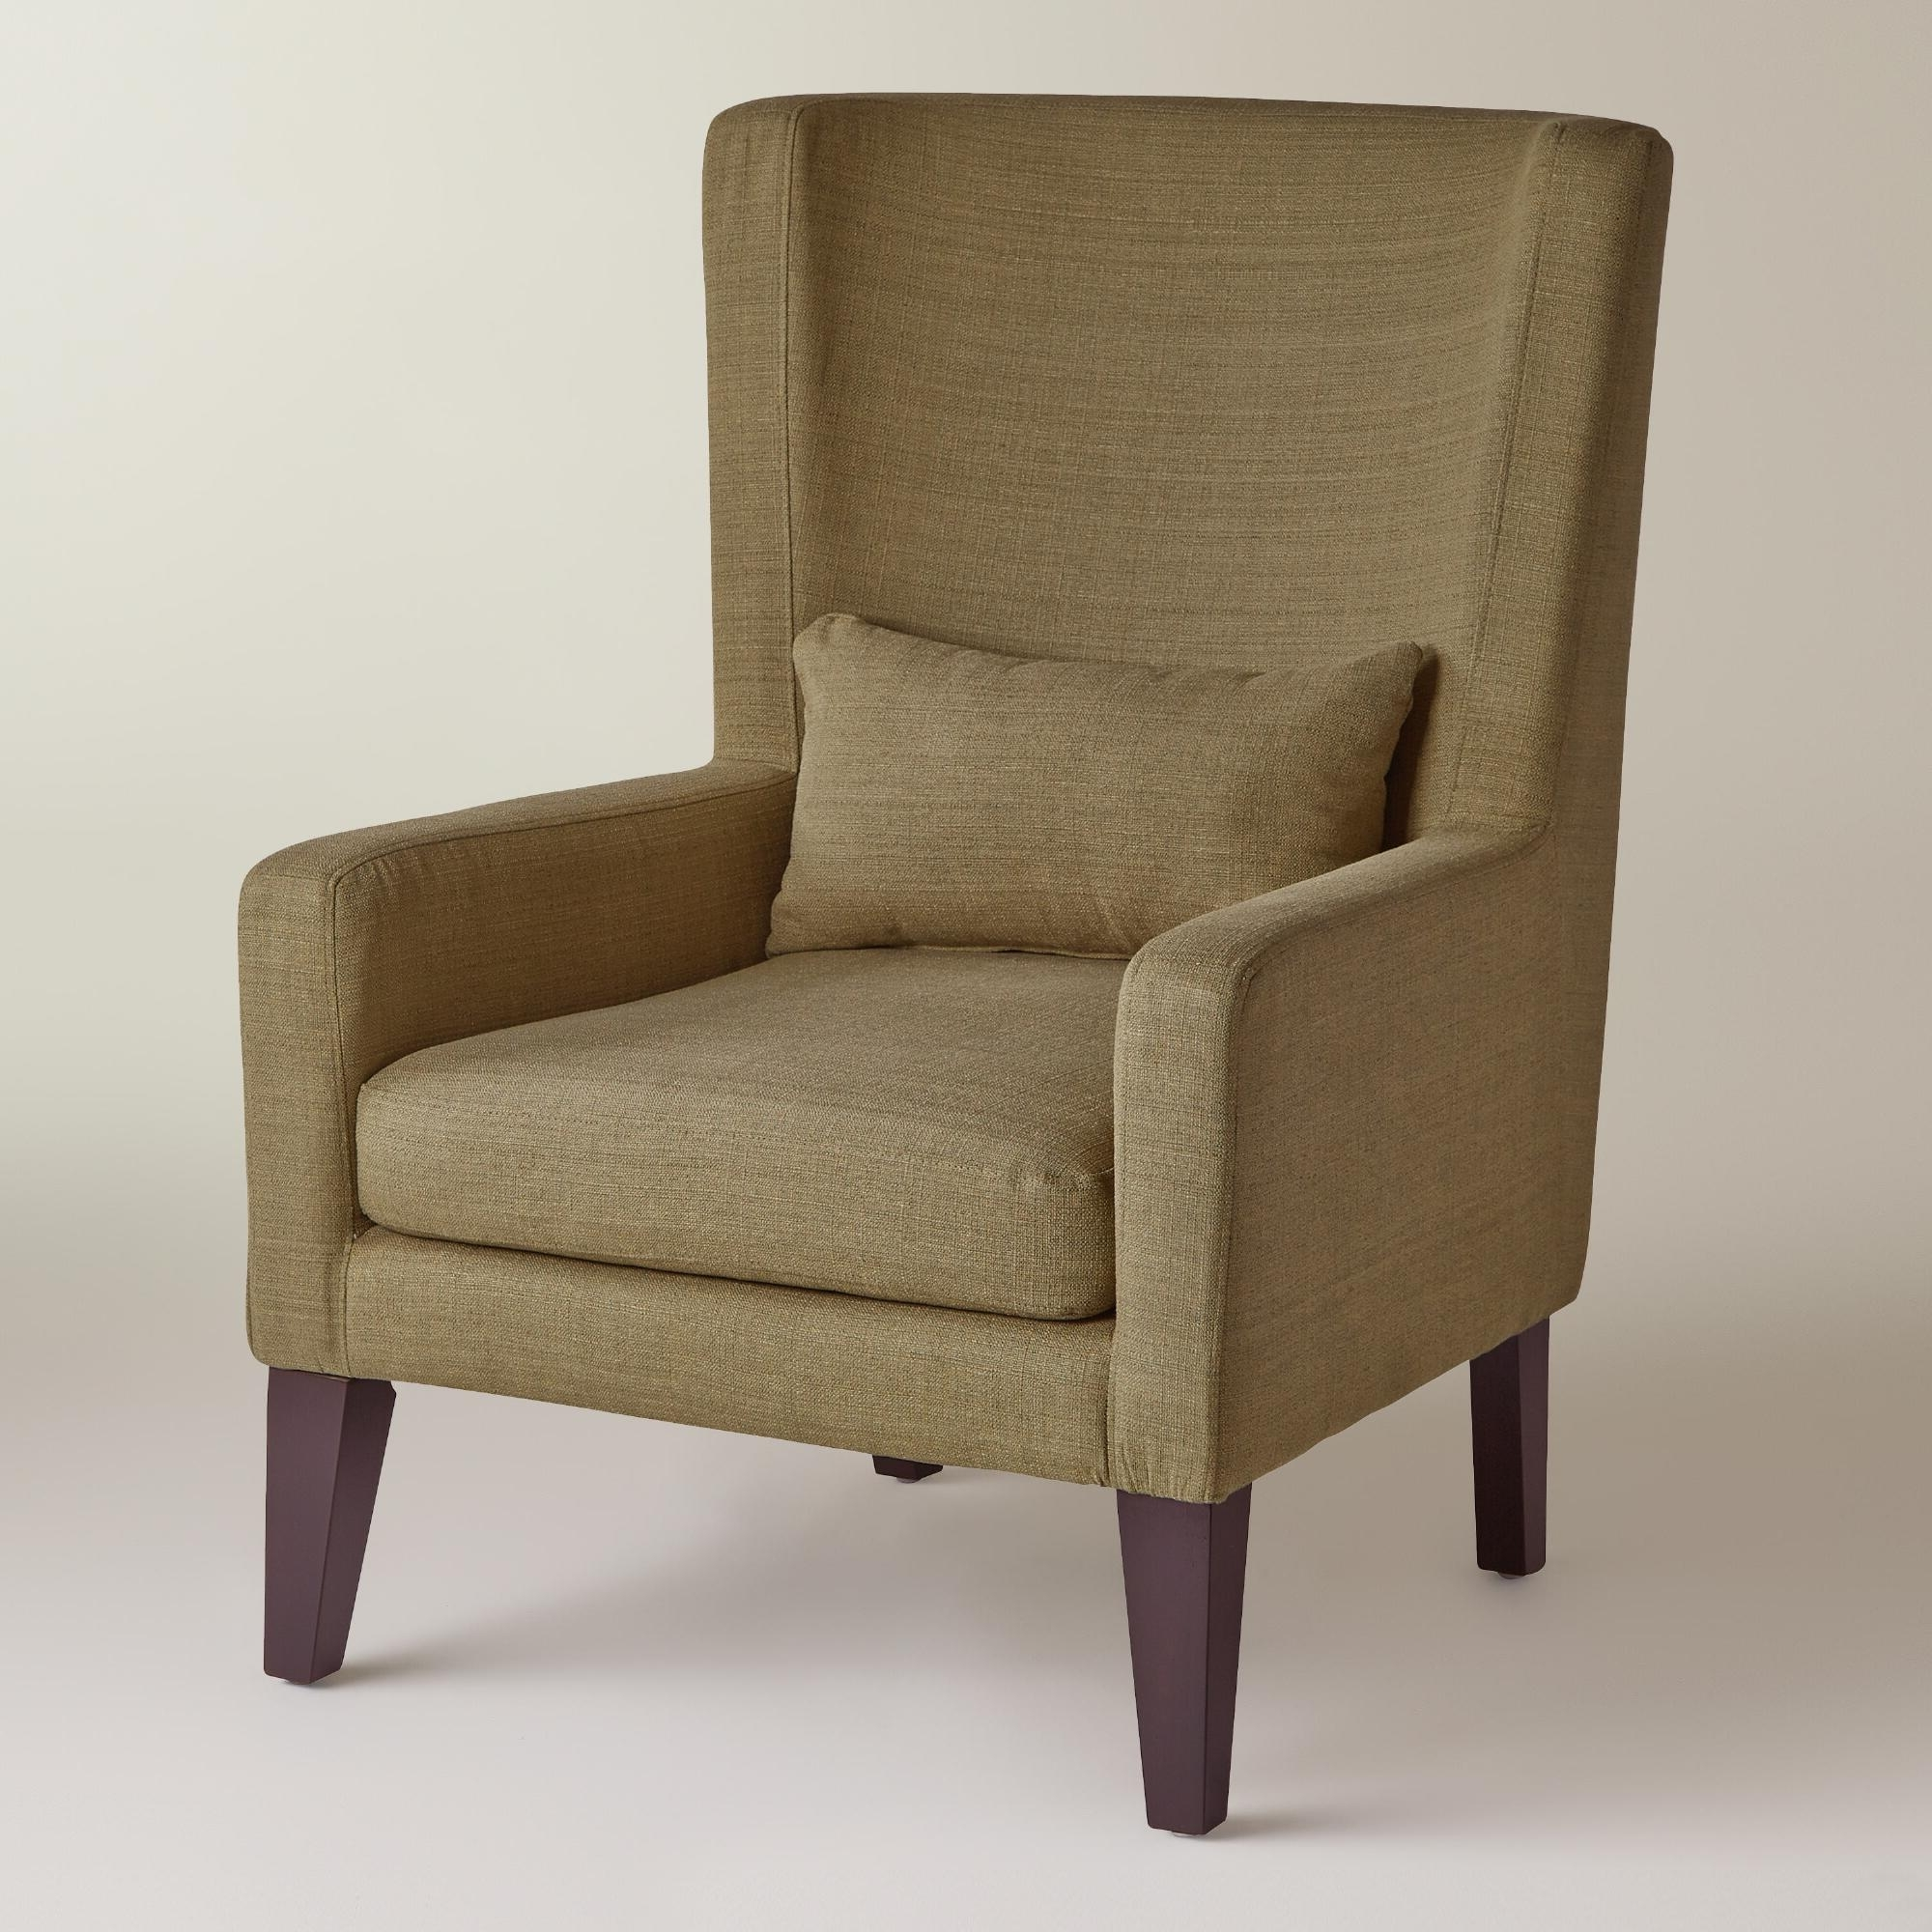 Green Sofa Chairs Intended For Widely Used Furniture: Amazing Chairs For Living Room Hayneedle Outdoor (View 6 of 15)